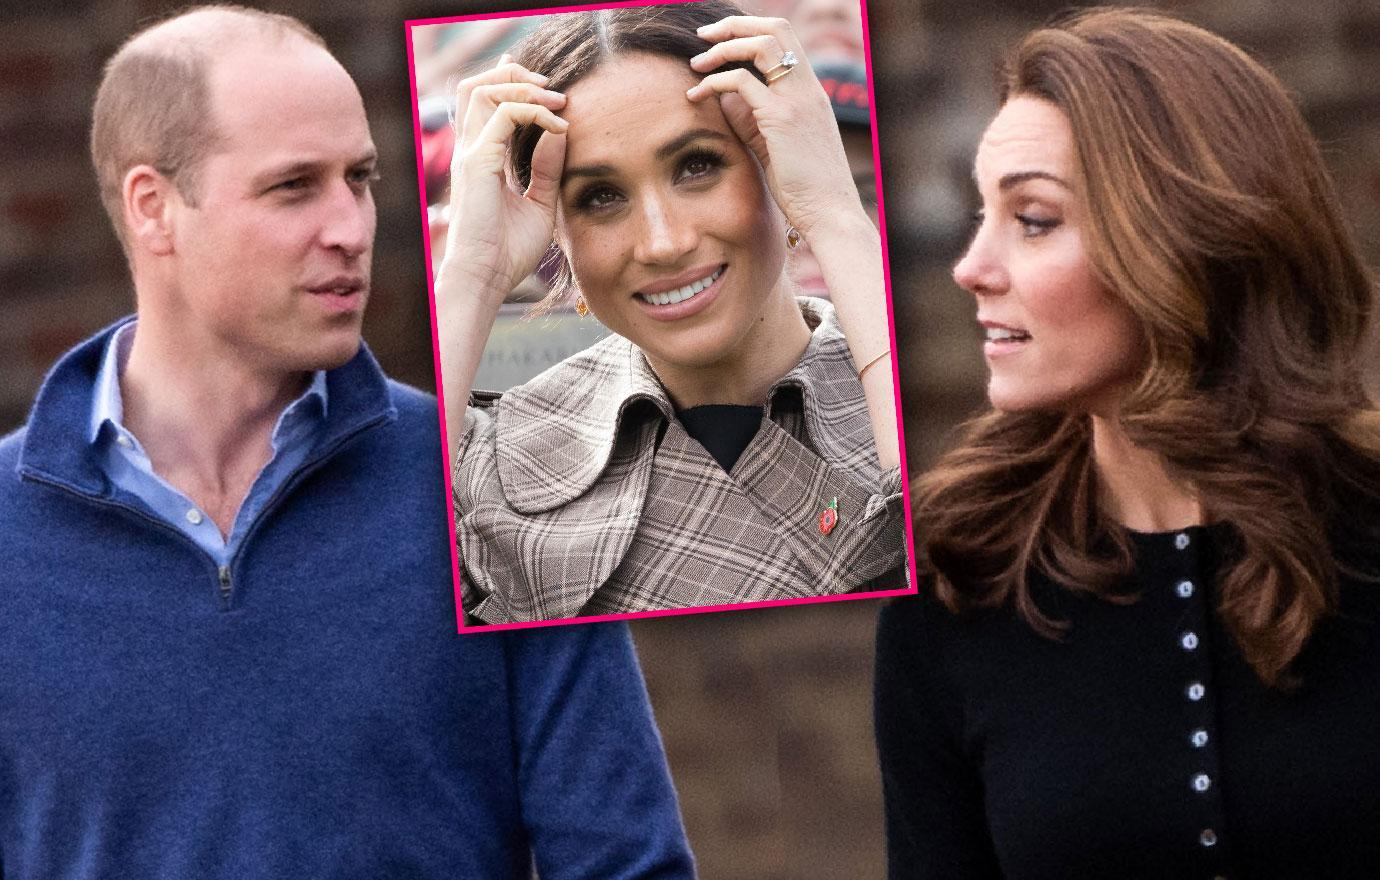 Kate Middleton And Prince William Skip Royal Meeting Amid Feud With Meghan Markle